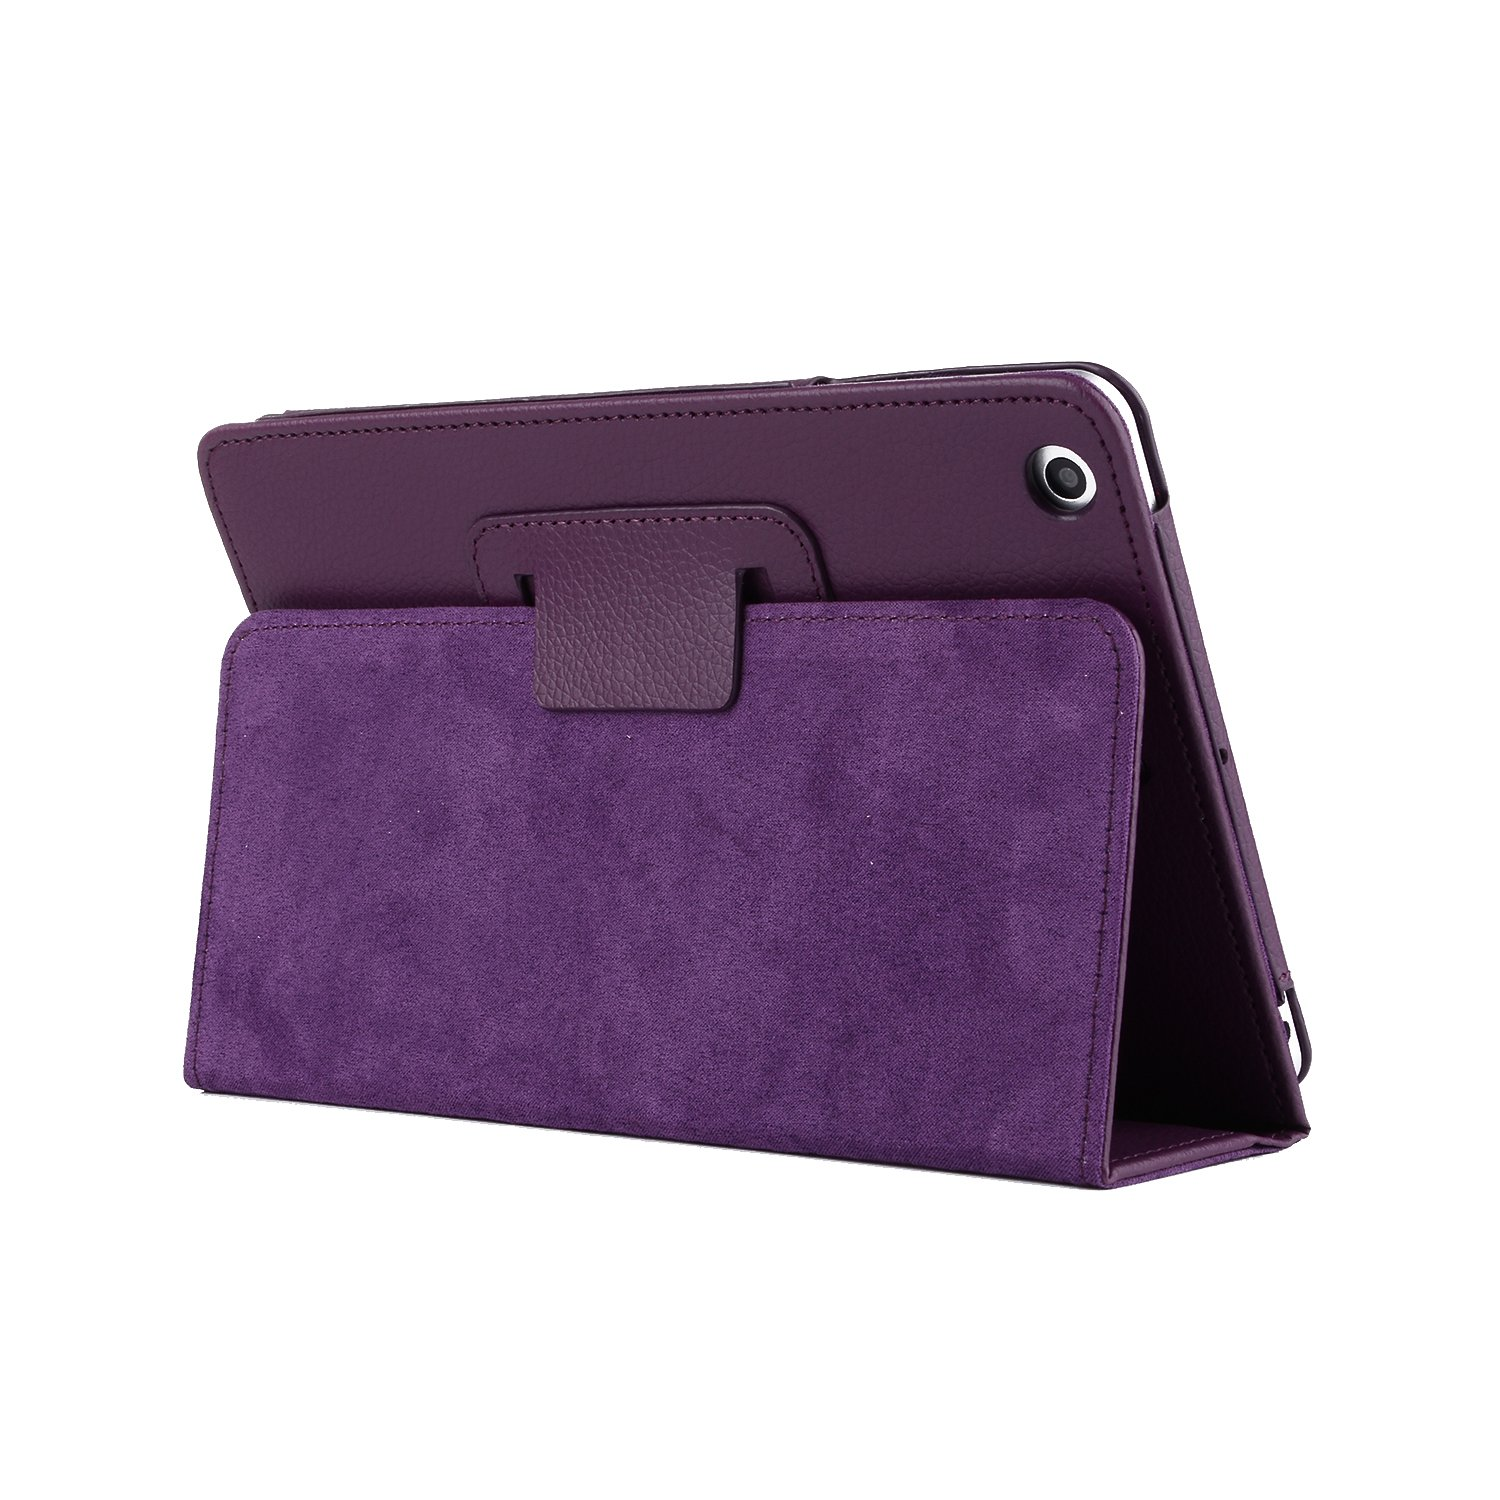 iPad 11 Inch Case, YiMiky Premium PU Leather Book Cover Case Thin and Lightweight Stand Cover Full Body Protection Case Business Style Folio Case for iPad Pro 11 Inch 2018 - Purple